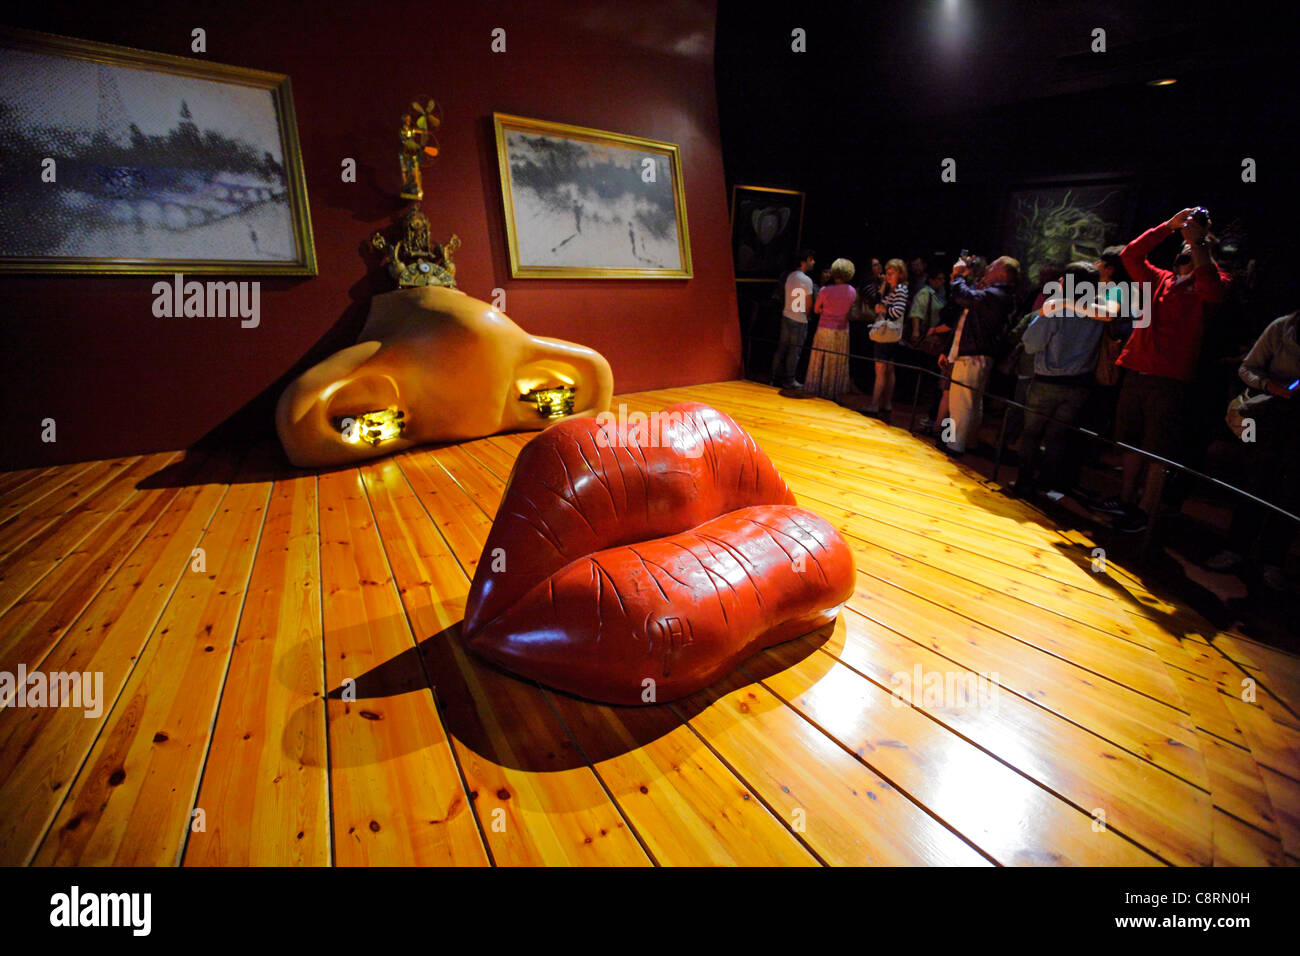 Mae West Room, sculptural installation displayed at Theatre-Museum of Salvador Dali. Figueres, Catalonia, Spain. - Stock Image